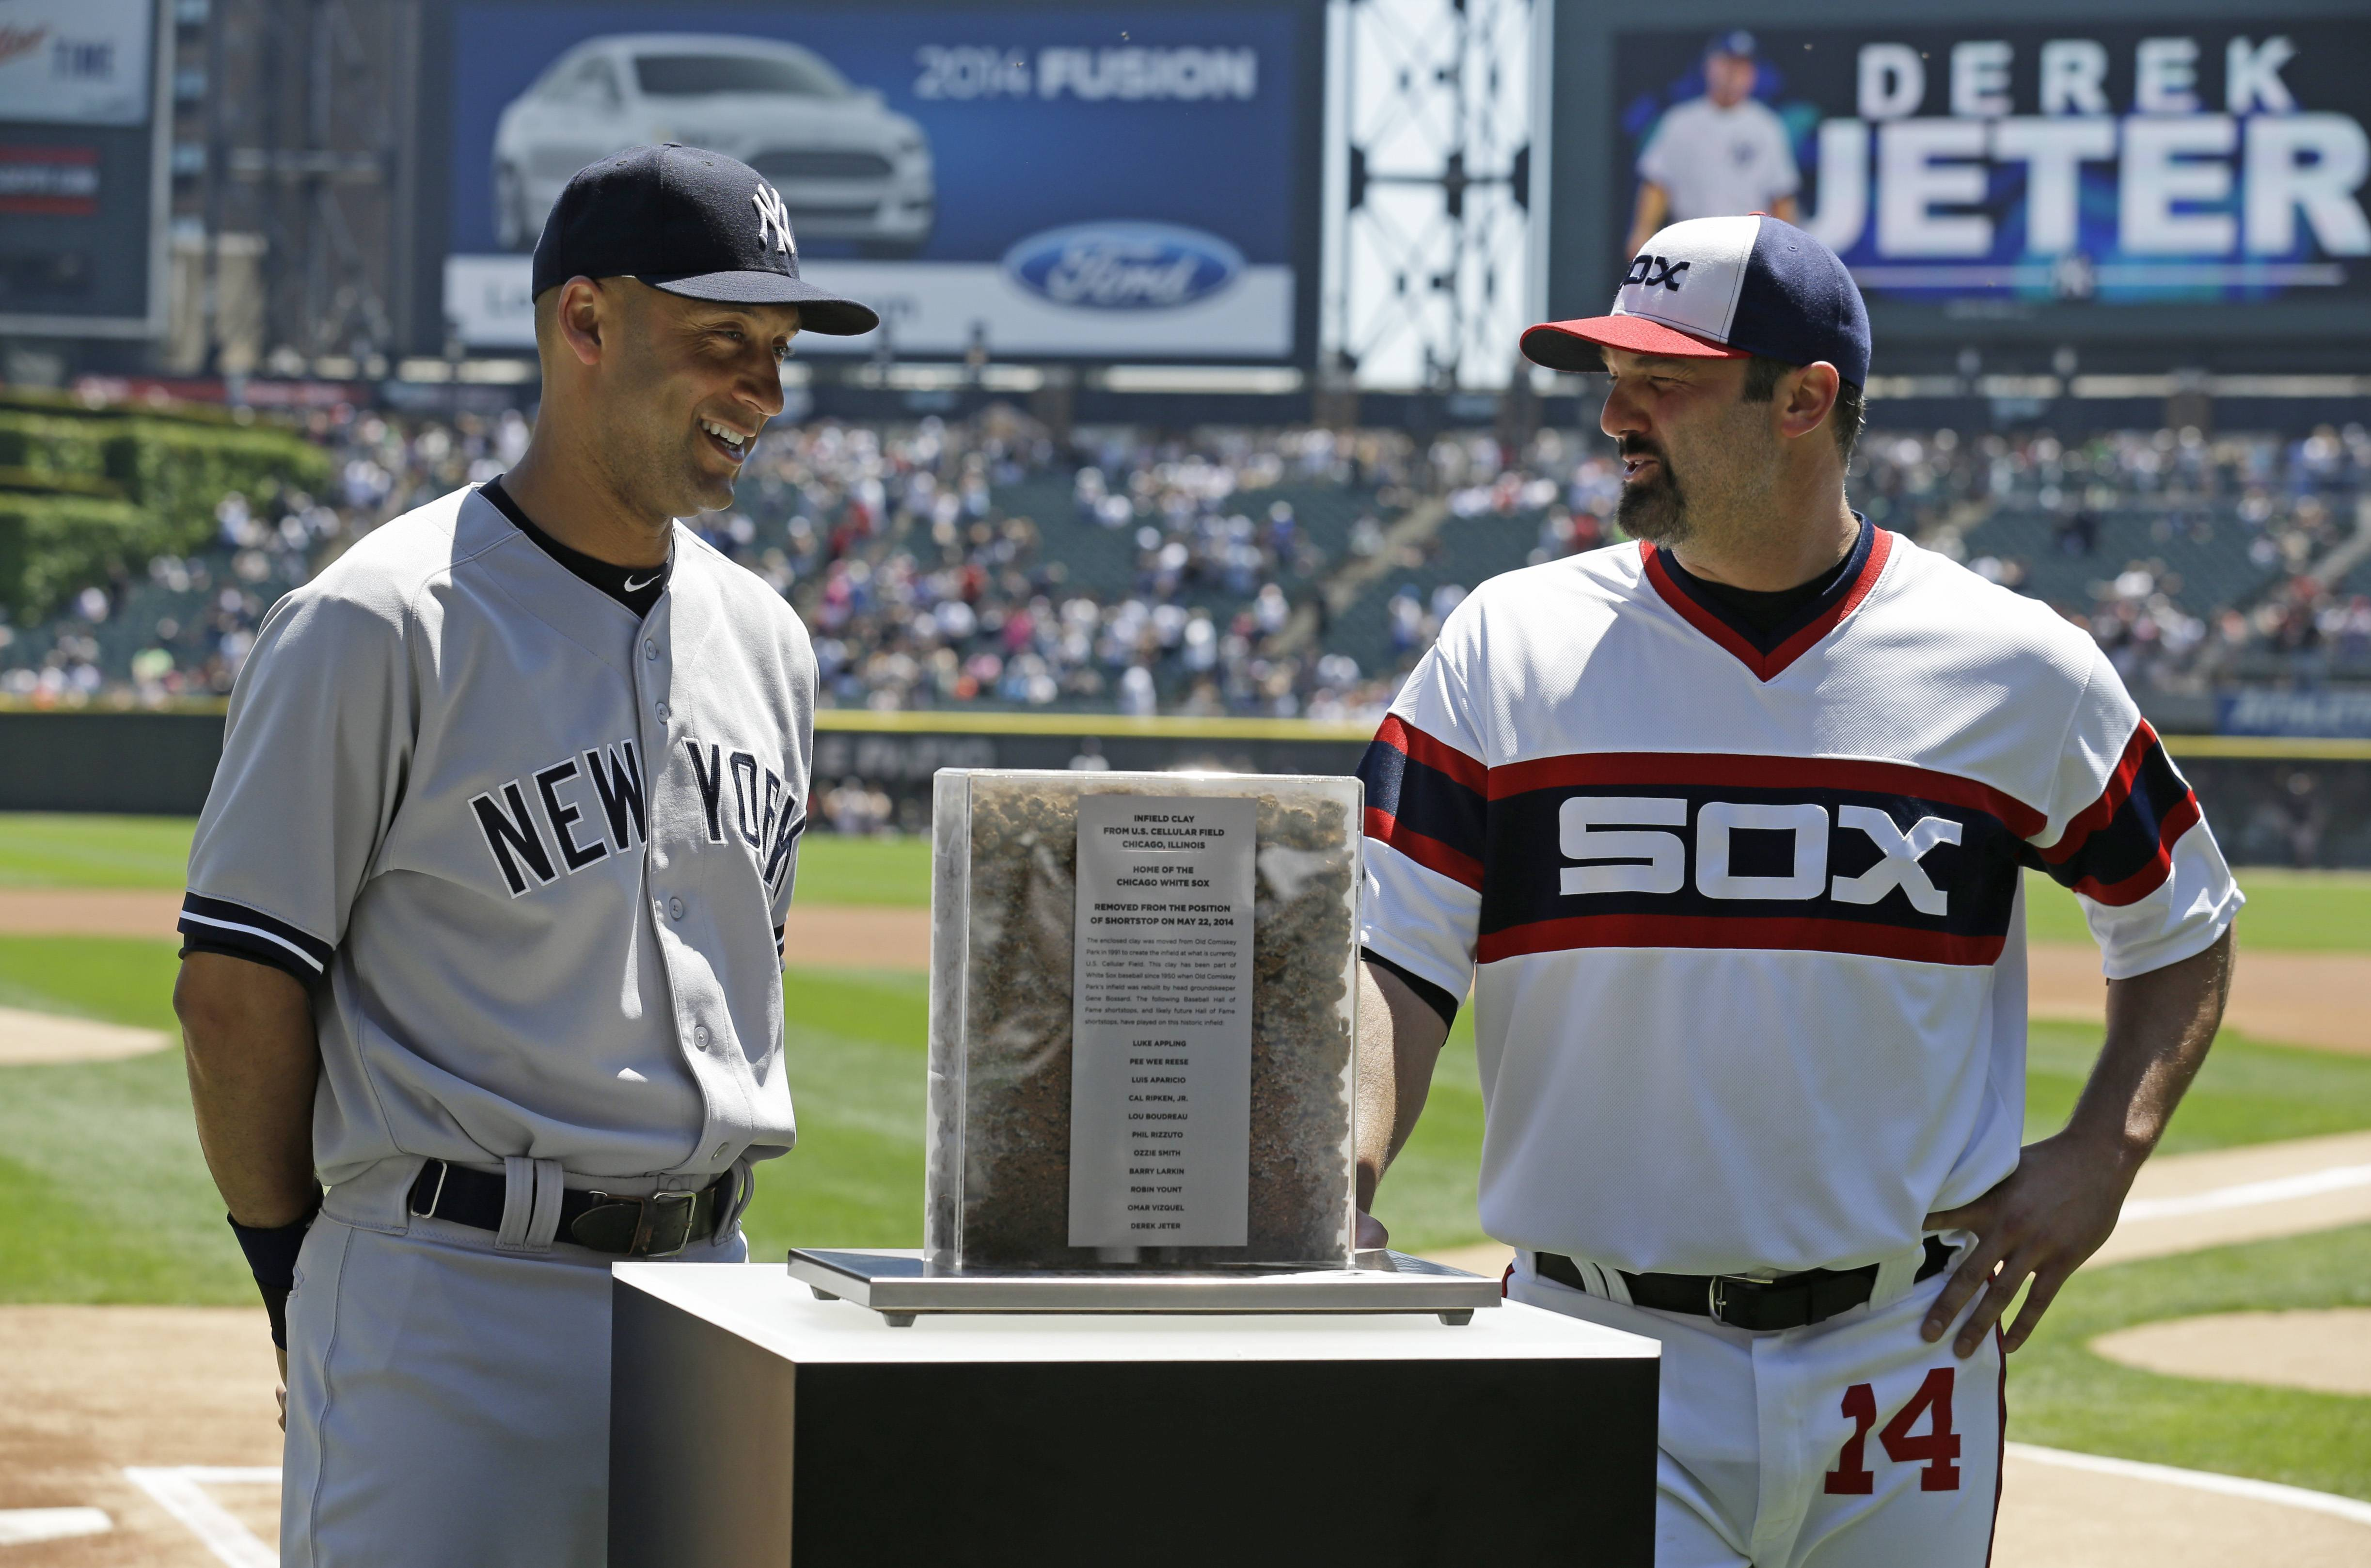 New York Yankees shortstop Derek Jeter, right, is presented with gifts from White Sox designated hitter Paul Konerko before a baseball game in Chicago on Sunday, May 25, 2014.